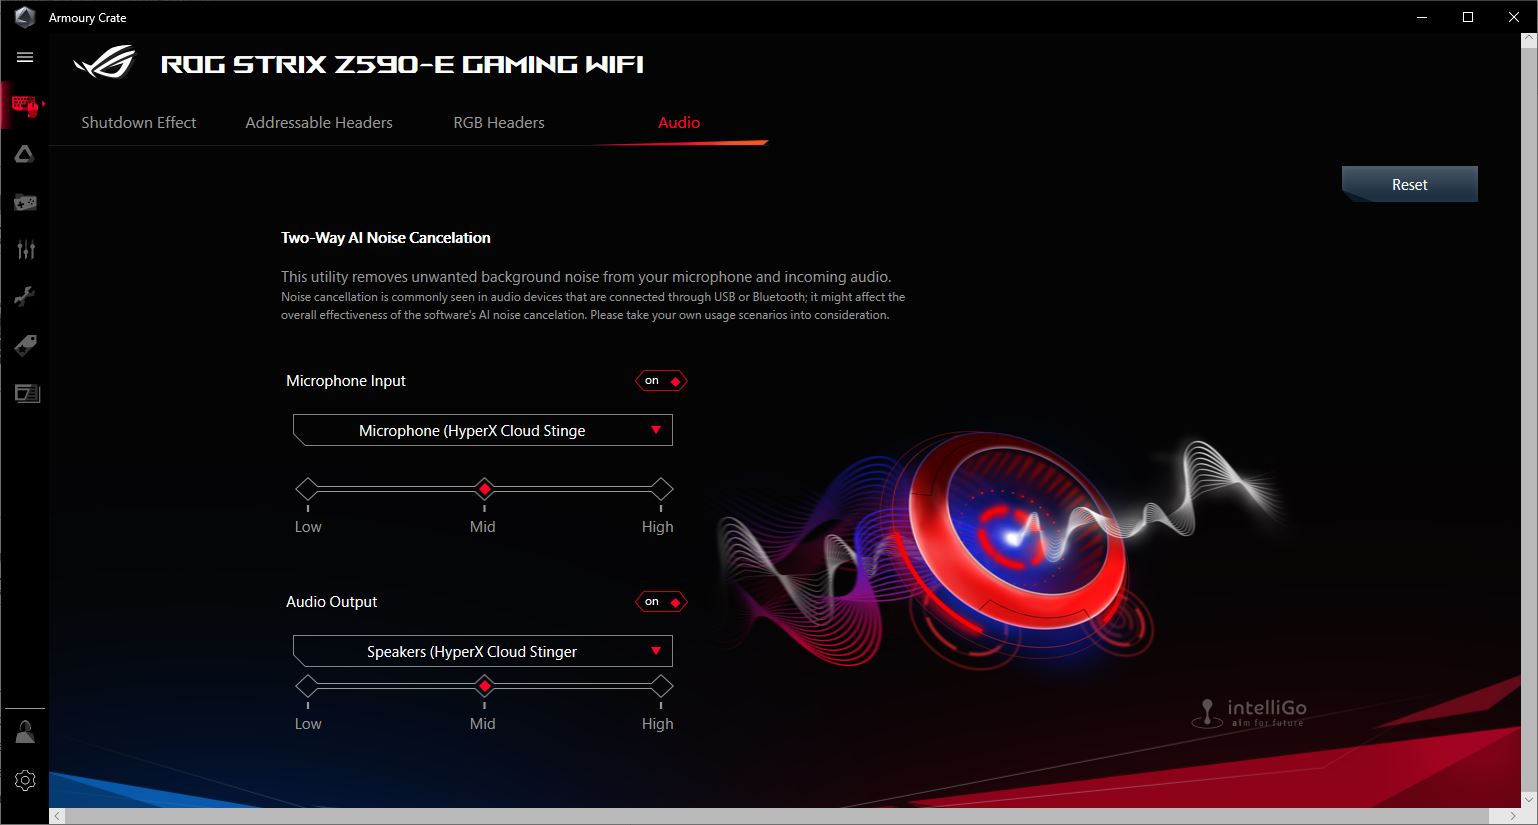 ASUS Two Way AI Noise Cancellation